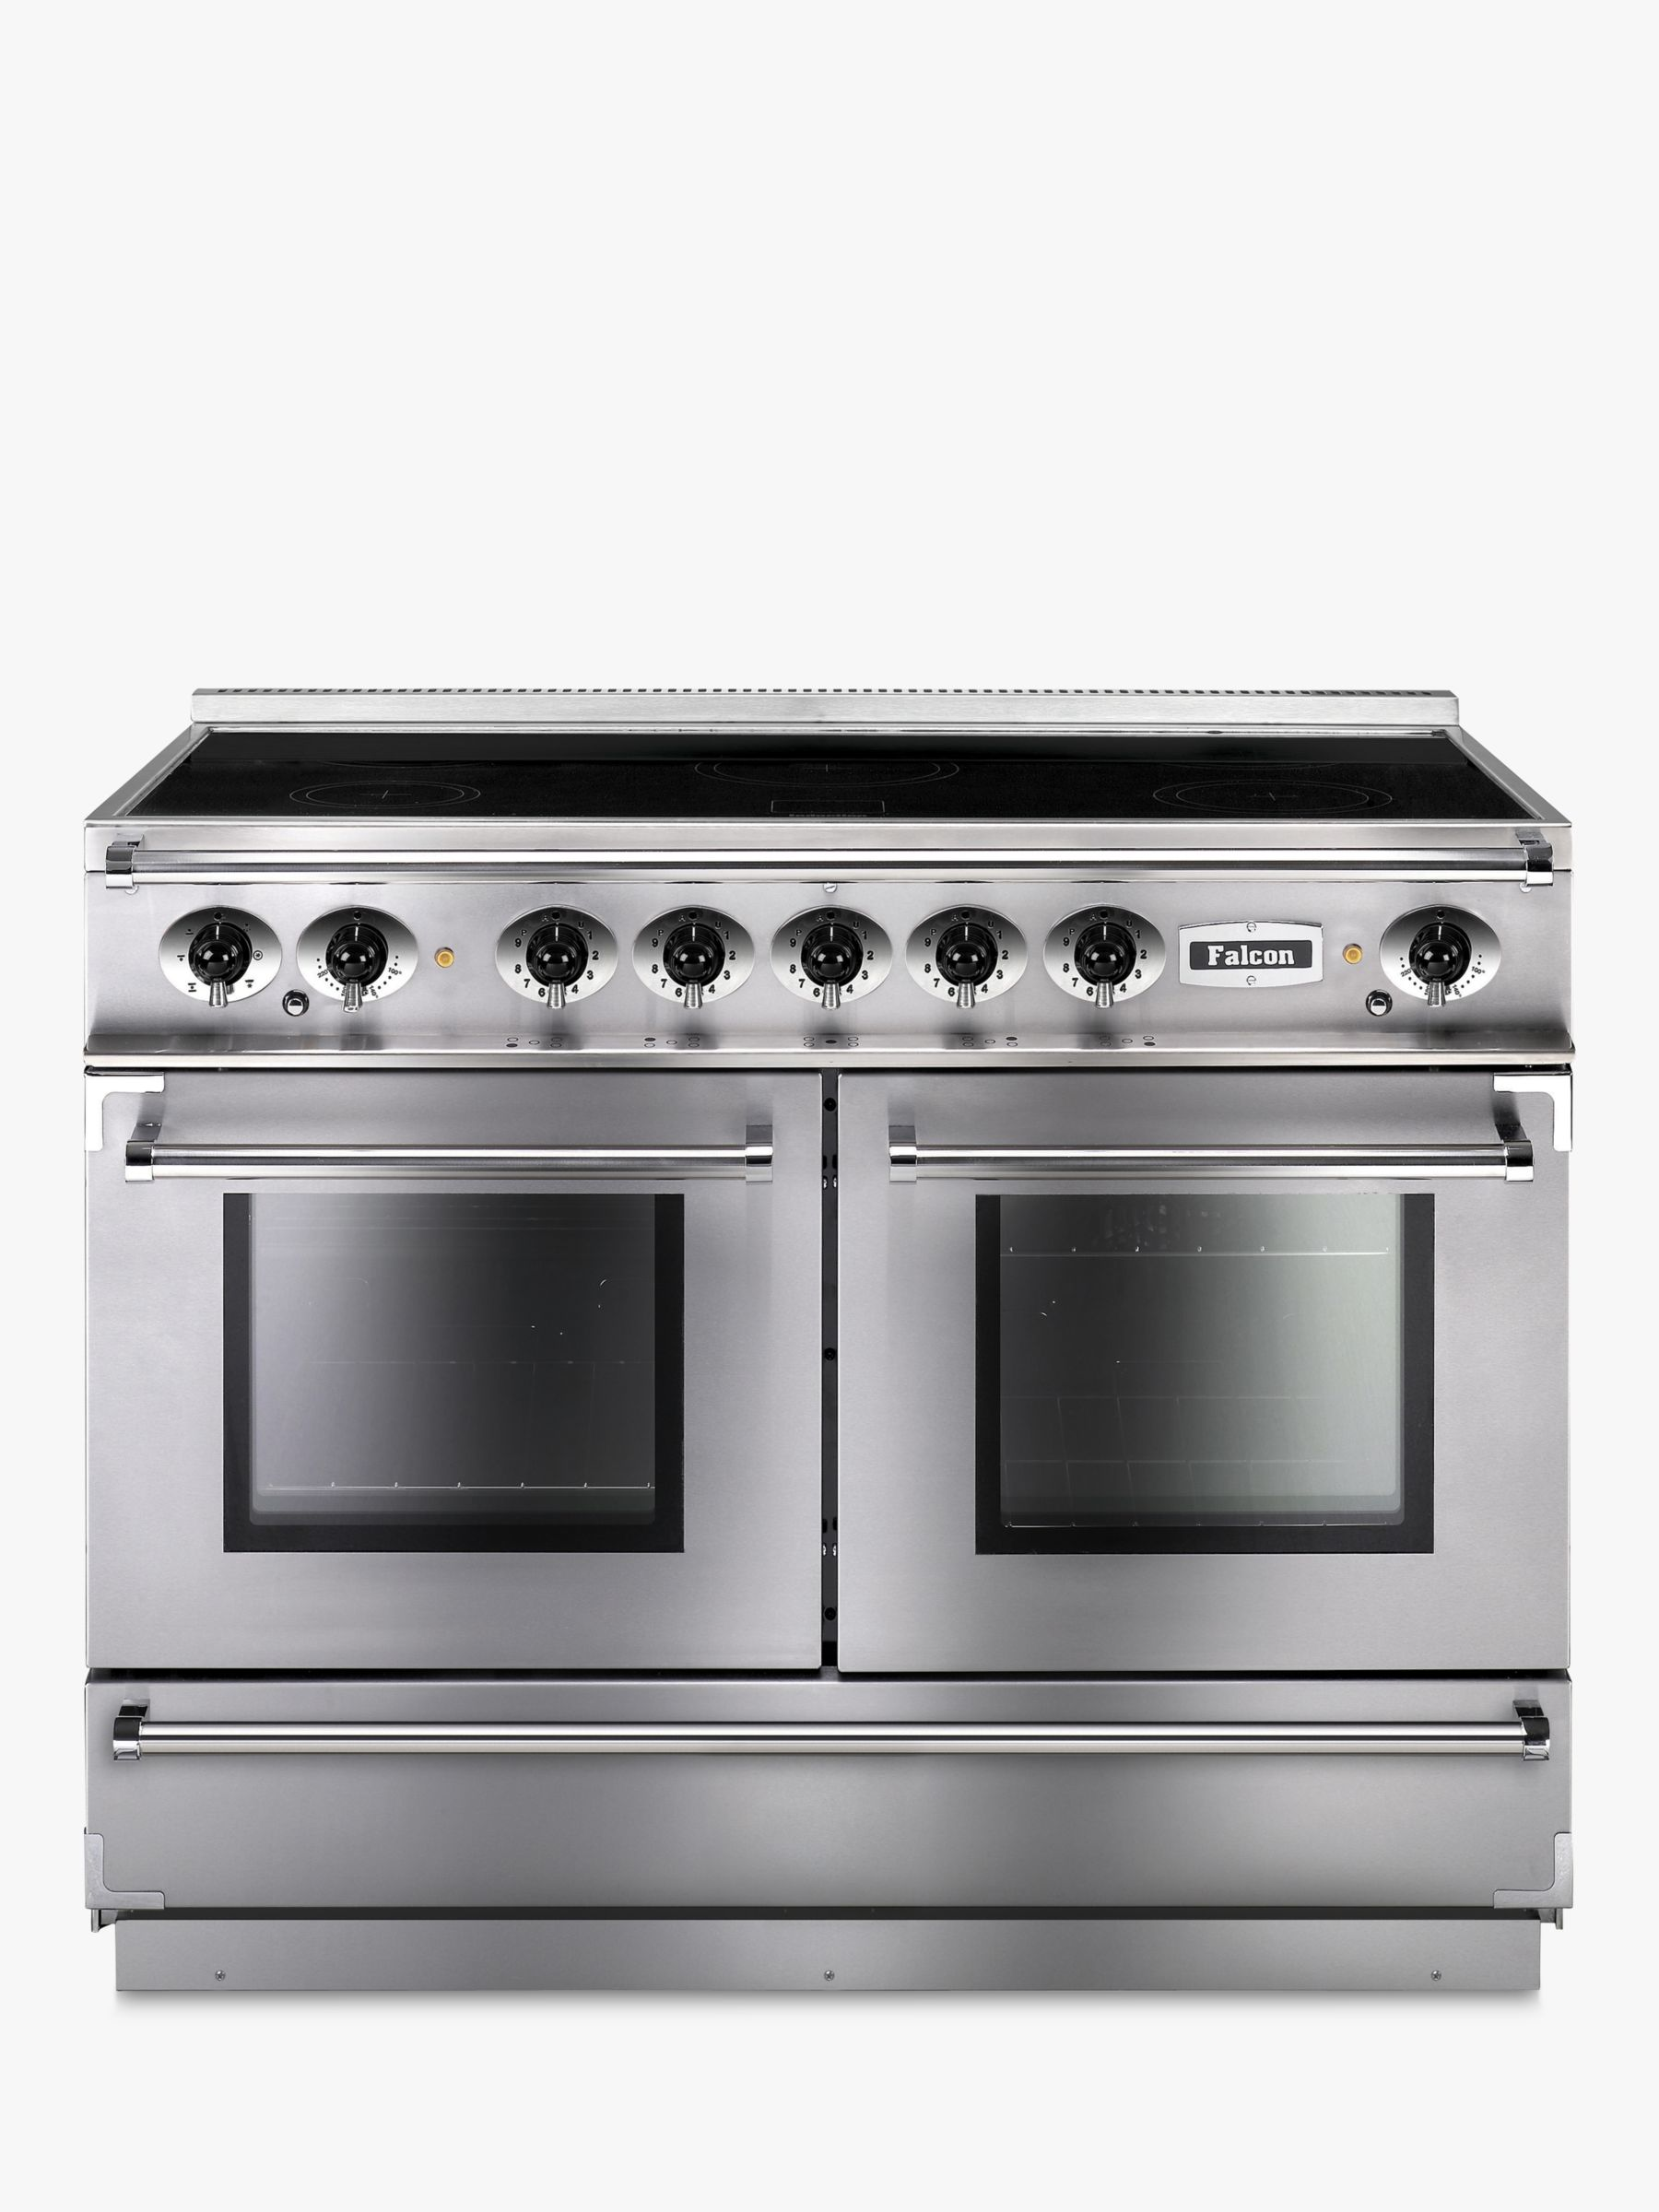 Falcon Falcon Continental 1092 EISS/C-EU Induction Hob Range Cooker, Stainless Steel & Chrome